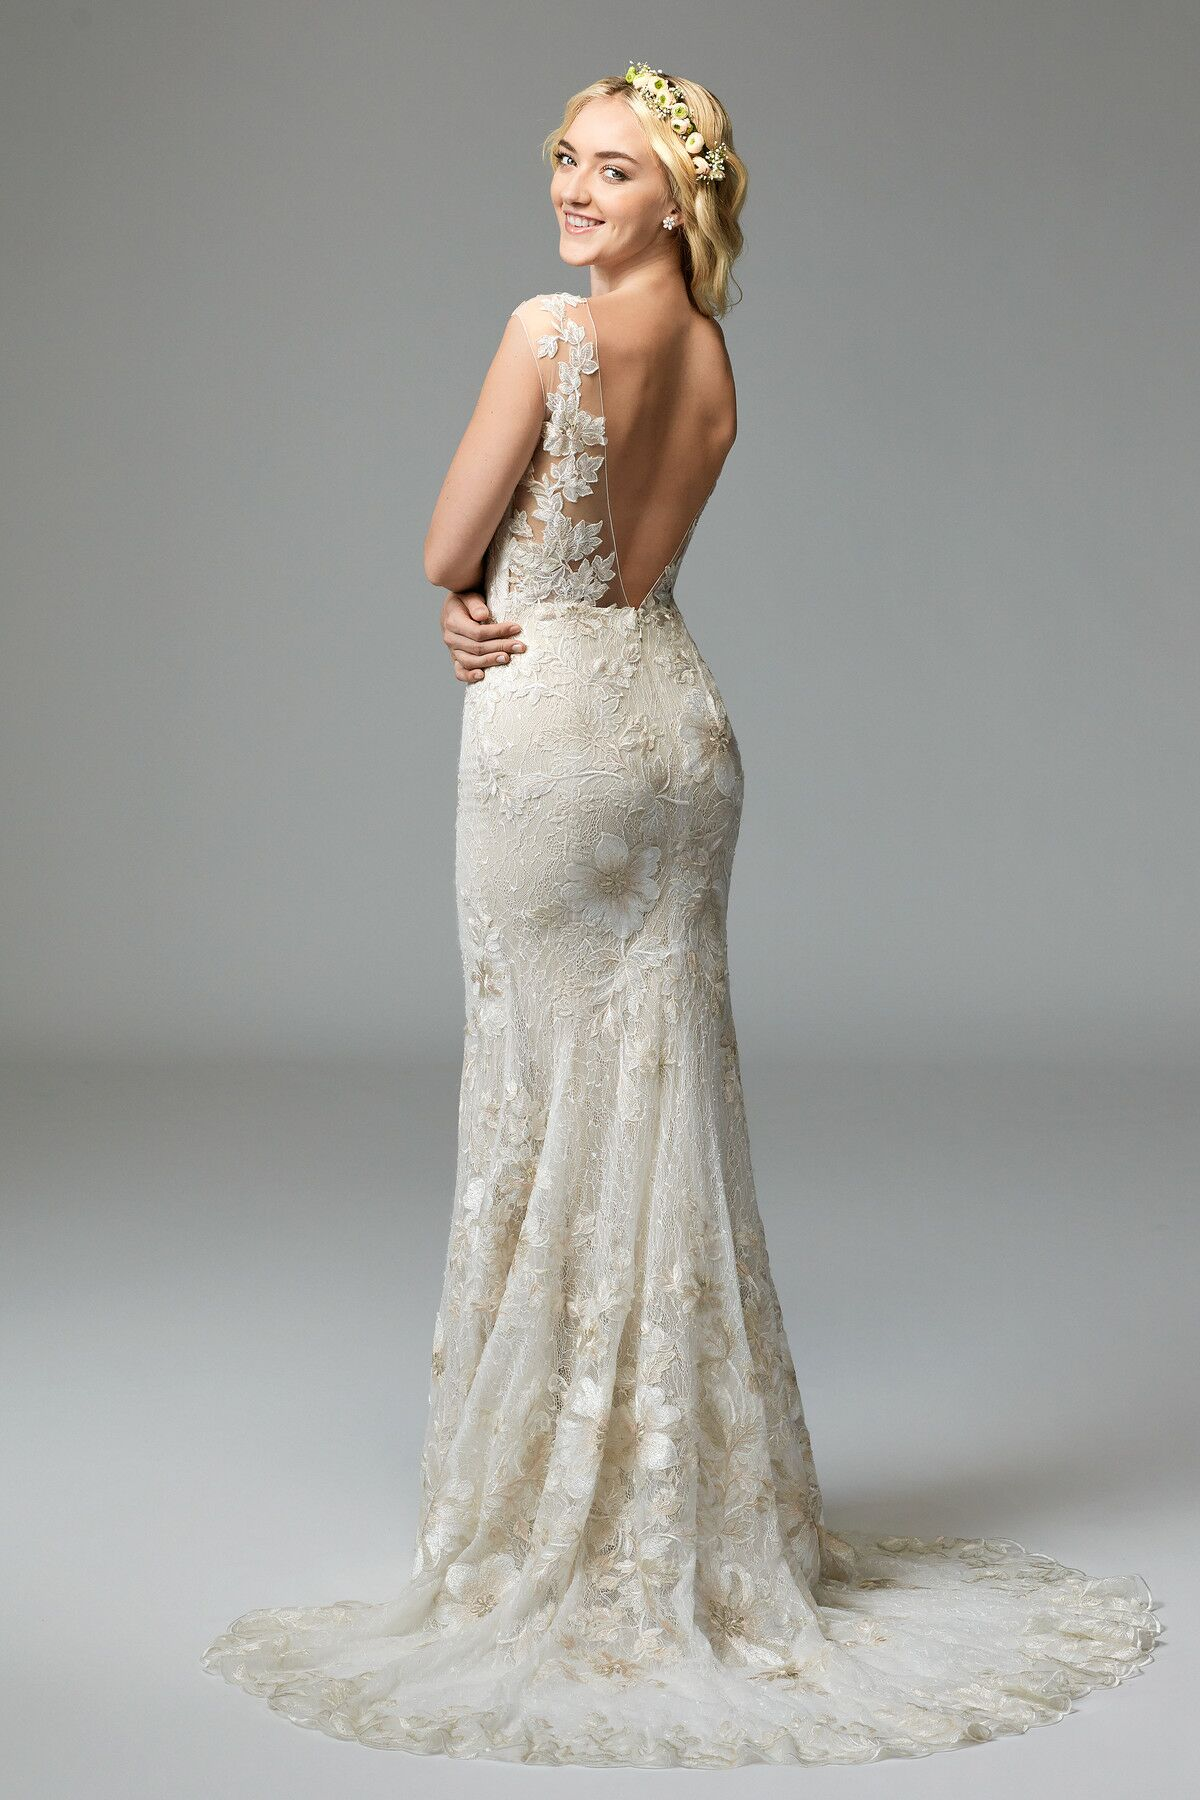 Bridepower & VOWS Bridal Outlet - Watertown, MA